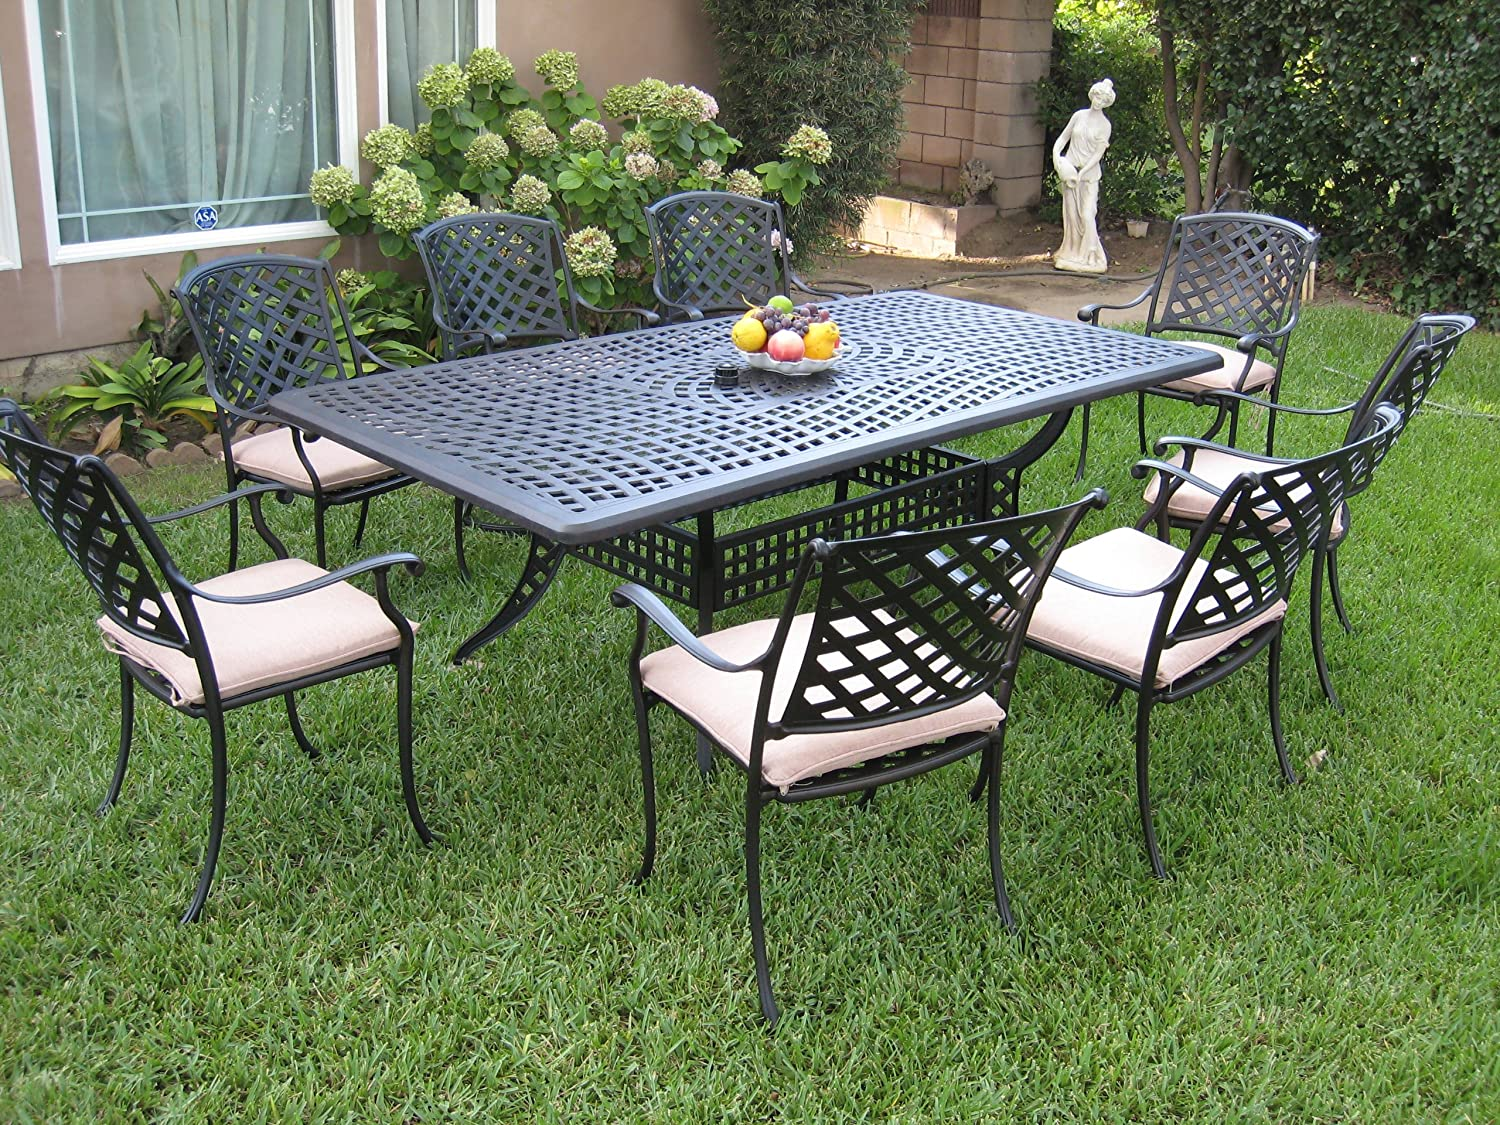 outdoor cast aluminum patio furniture 9 piece dining set. Black Bedroom Furniture Sets. Home Design Ideas